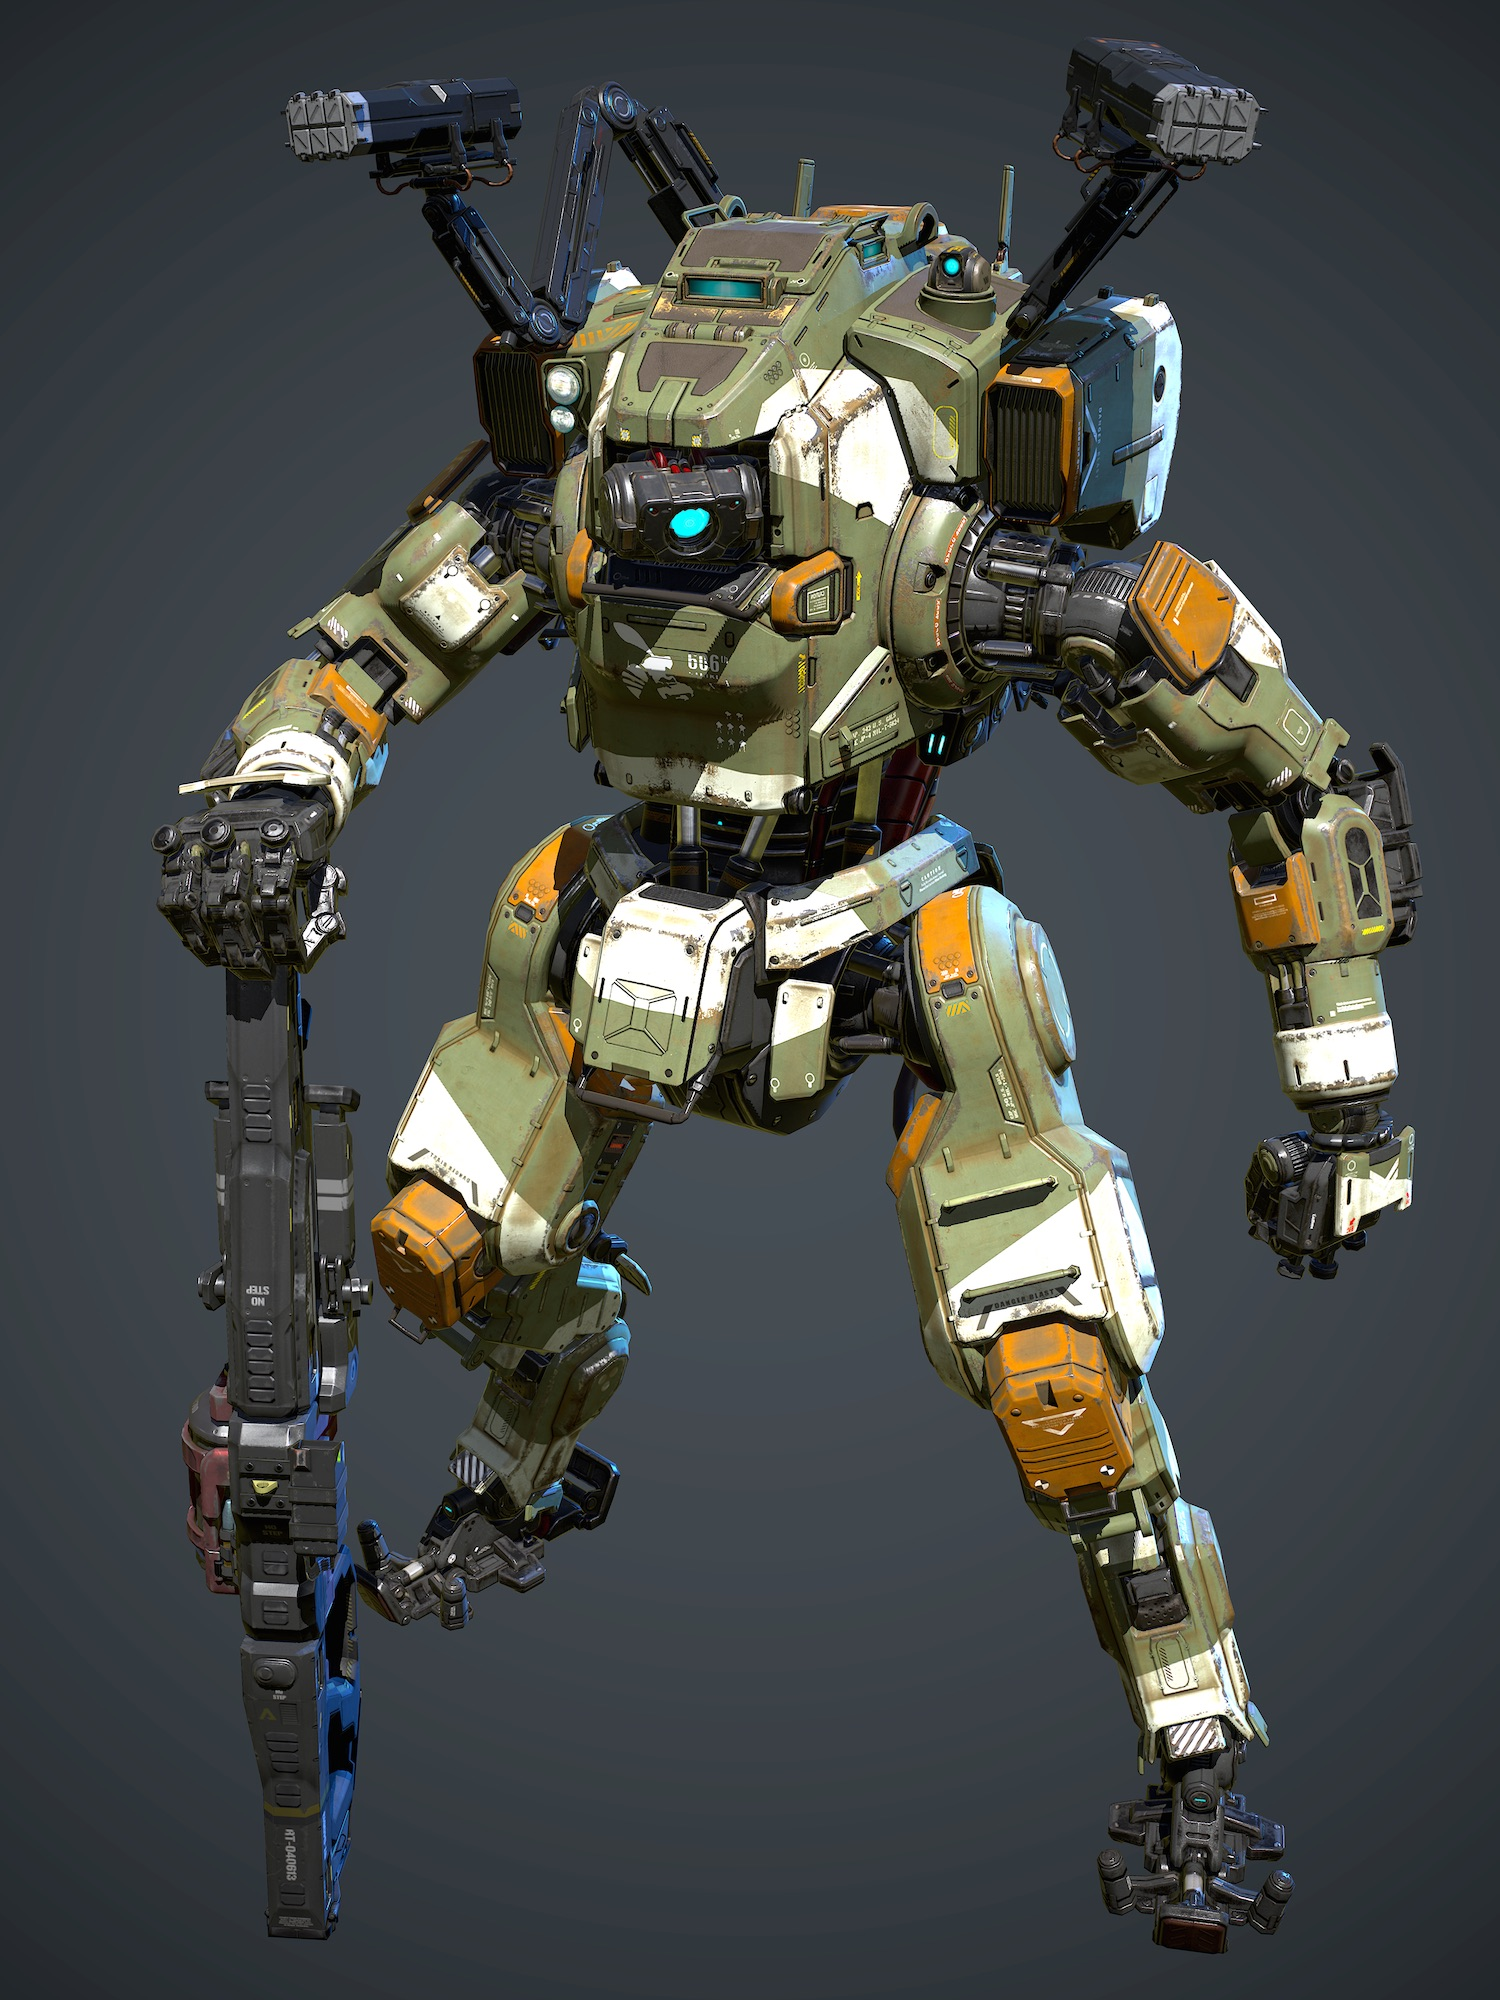 red dawn helicopter with Titanfall 2 Bt Mech Design Interview Respawn Entertainment on Shield Protection Defense Viruses 1970470 furthermore 30 Picture likewise Titanfall 2 Bt Mech Design Interview Respawn Entertainment as well Mammoth tank  Renegade as well Shield Protection Defense Viruses 1970470.